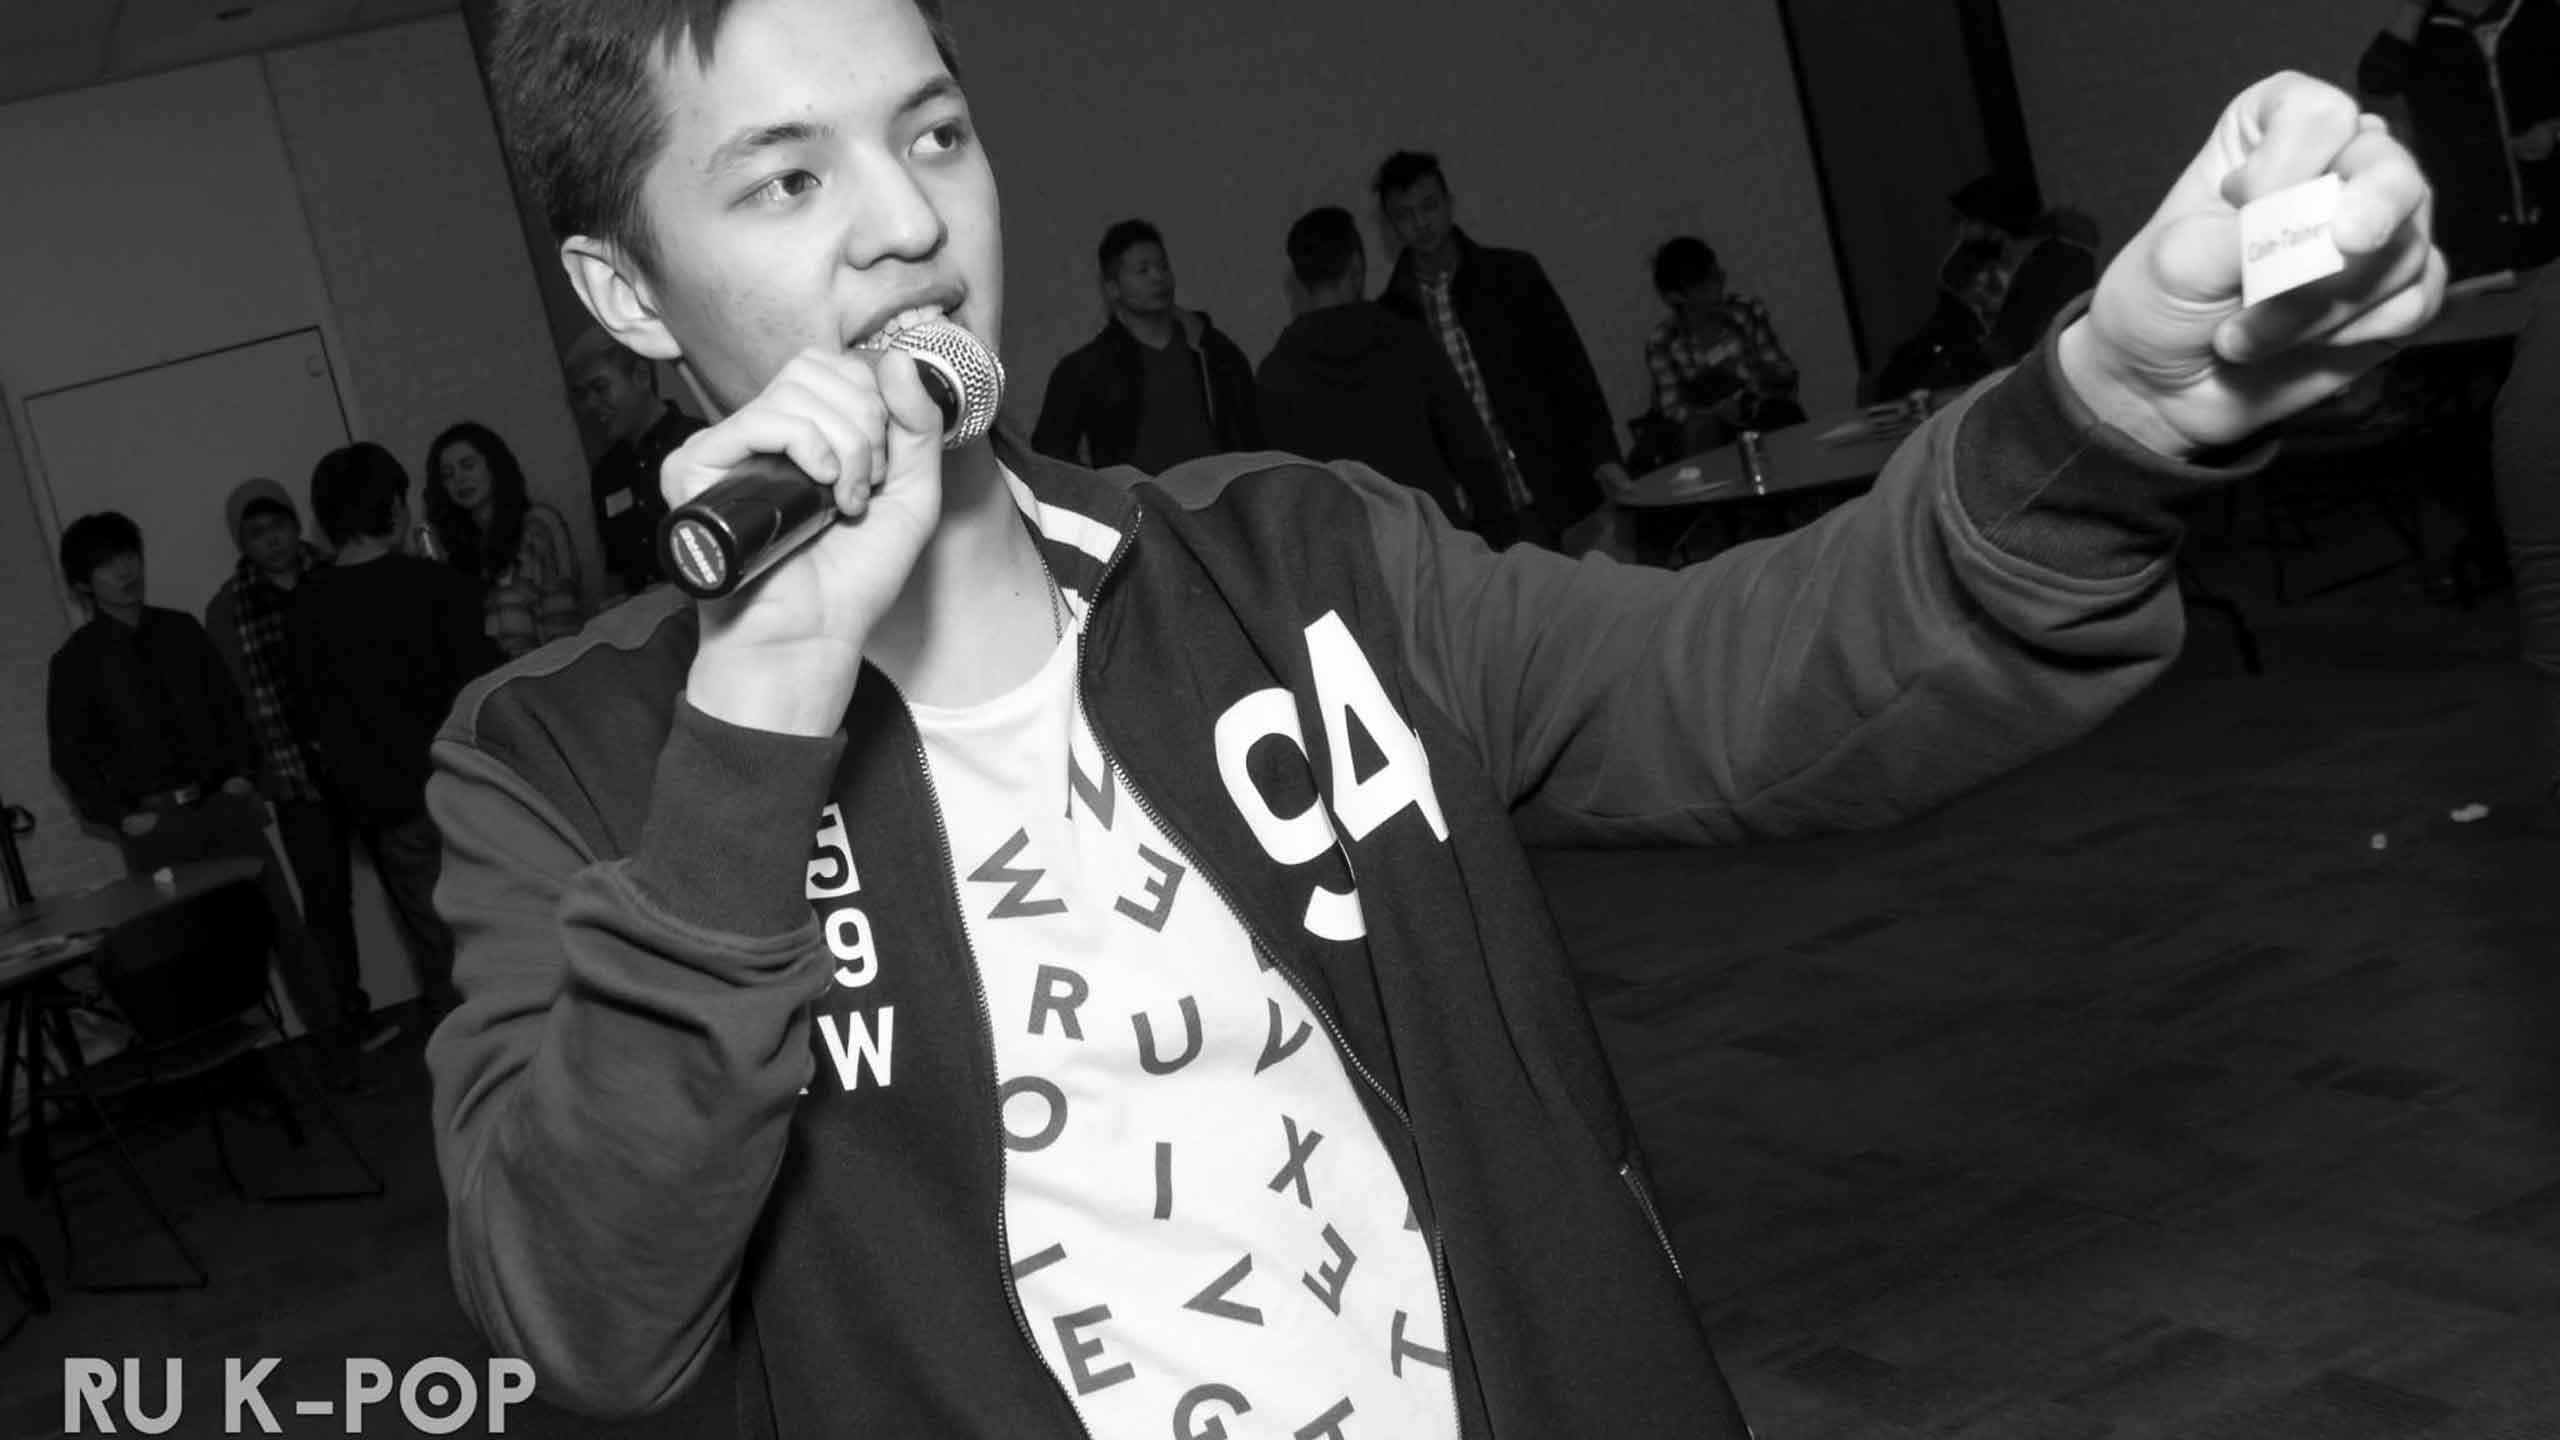 RU K-Pop member sings at event last year. PHOTO COURTESY RU K-POP